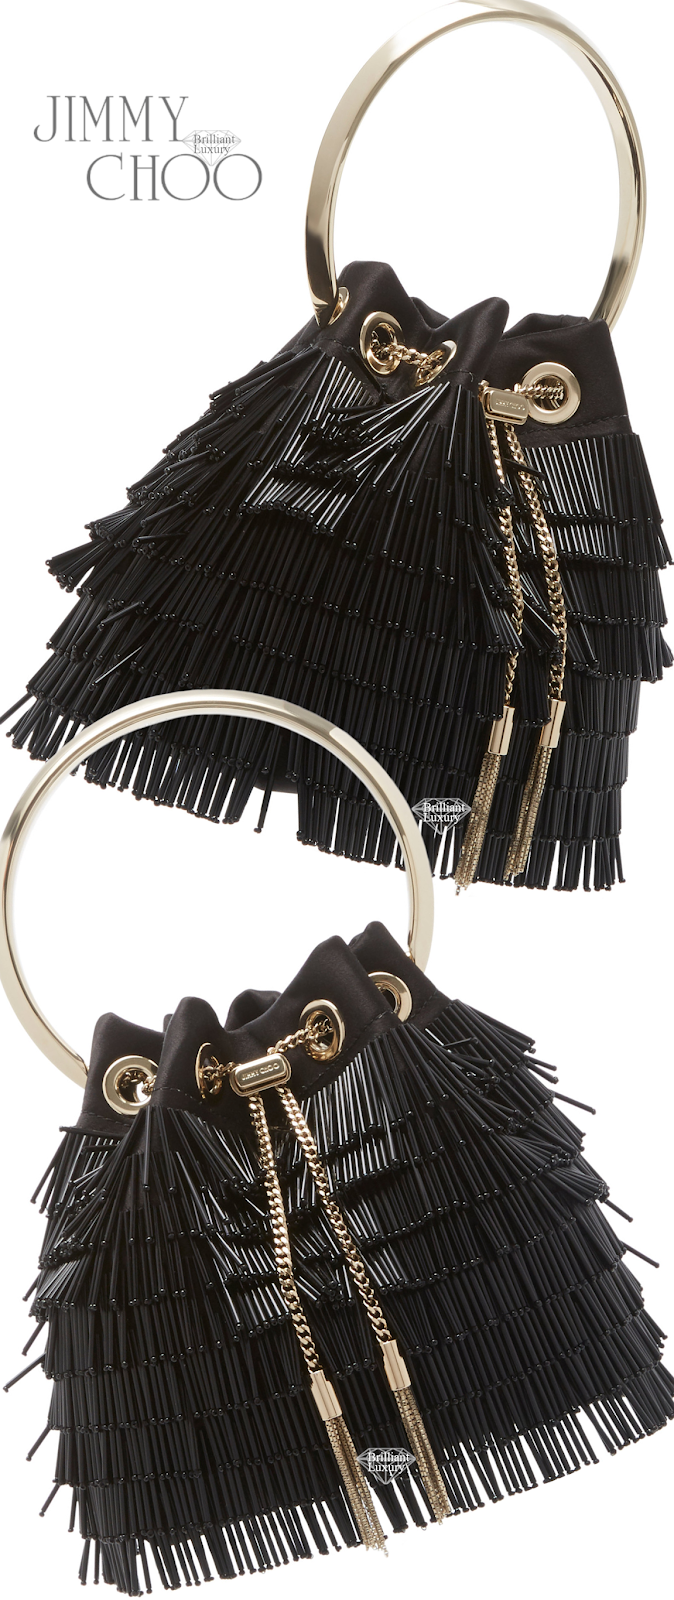 Jimmy Choo Bon Bon Fringed Black Crystal-Embellished Satin Bag #brilliantluxury